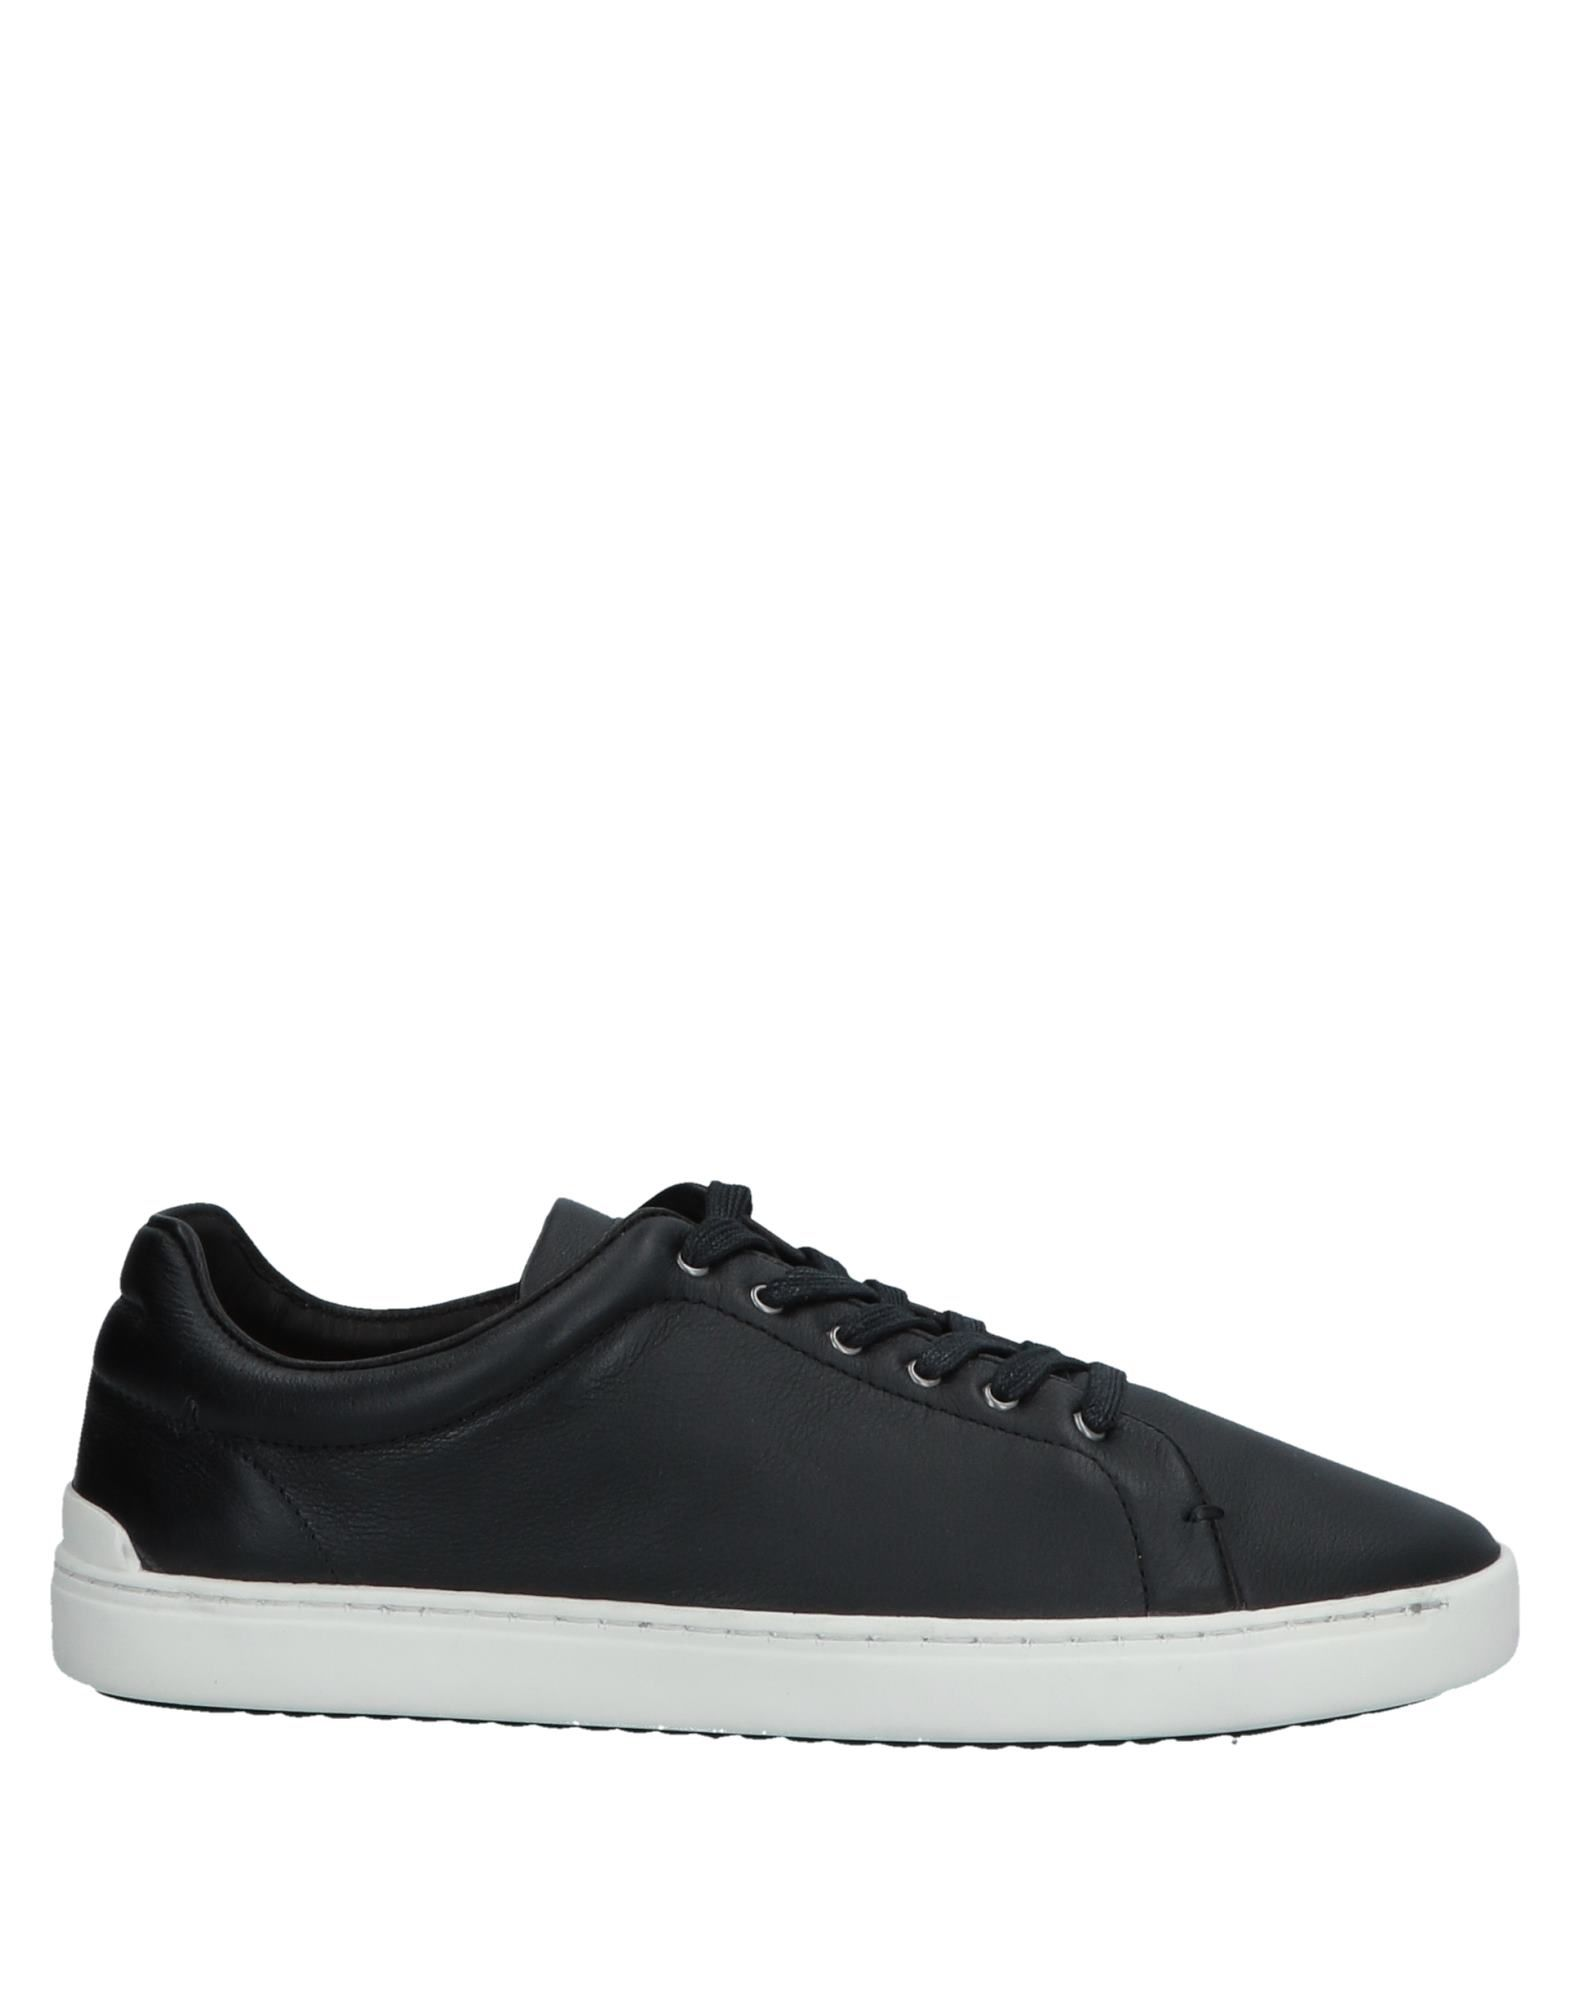 Baskets Rag & Bone Femme - Baskets Confortable Rag & Bone Noir Confortable Baskets et belle f7b6a3